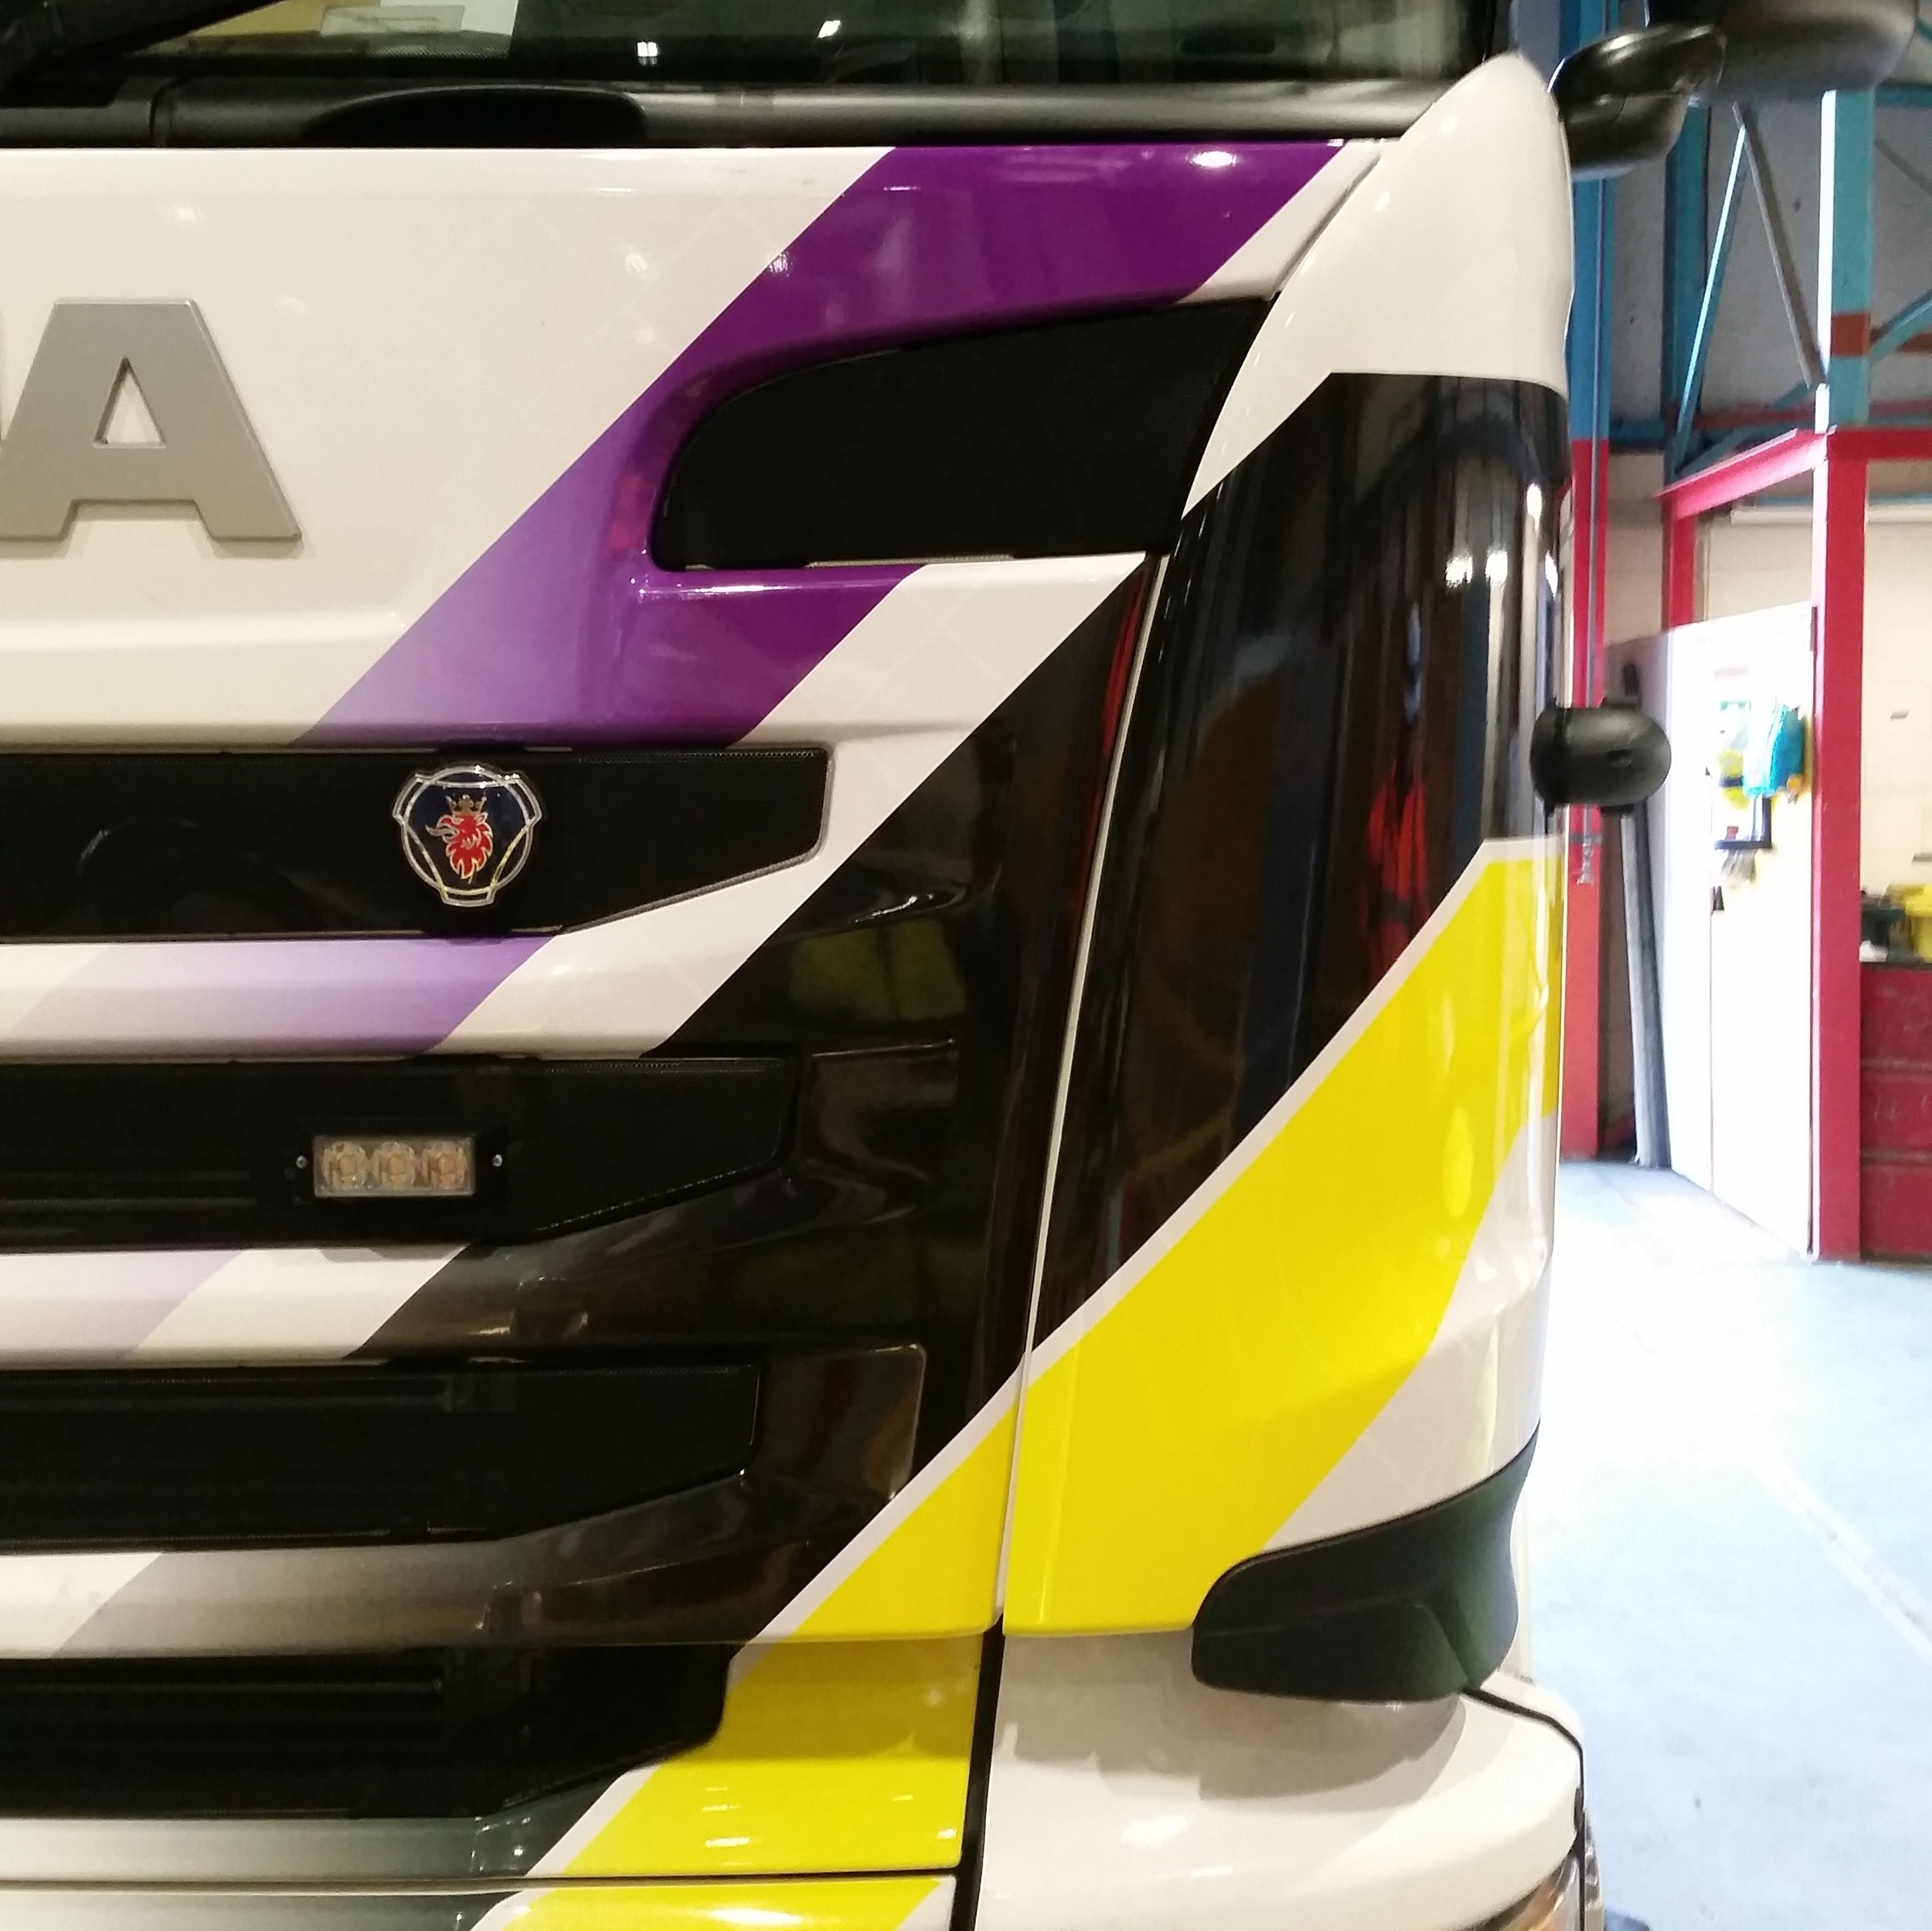 3M Printed Wrap Vinyl Fitted to a Scania Lorry